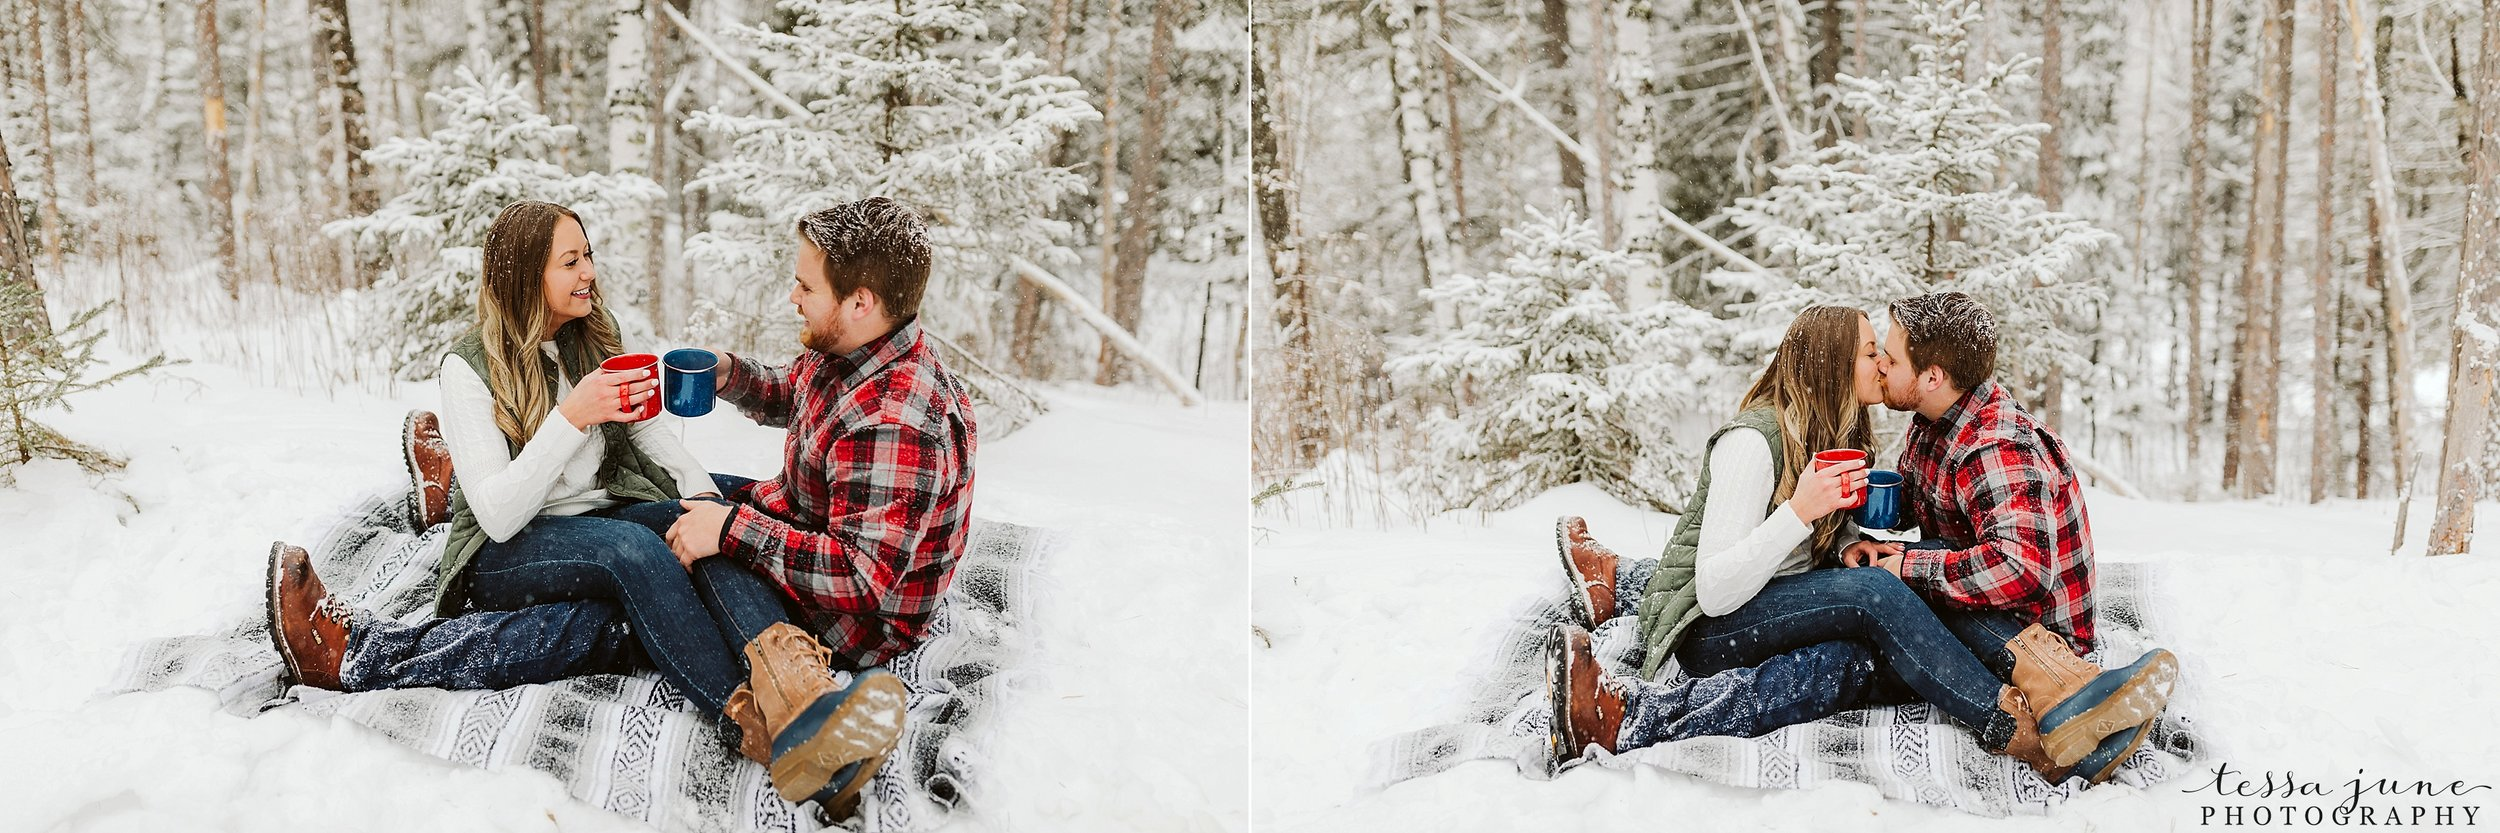 duluth-winter-engagement-forest-photos-during-snow-storm-27.jpg